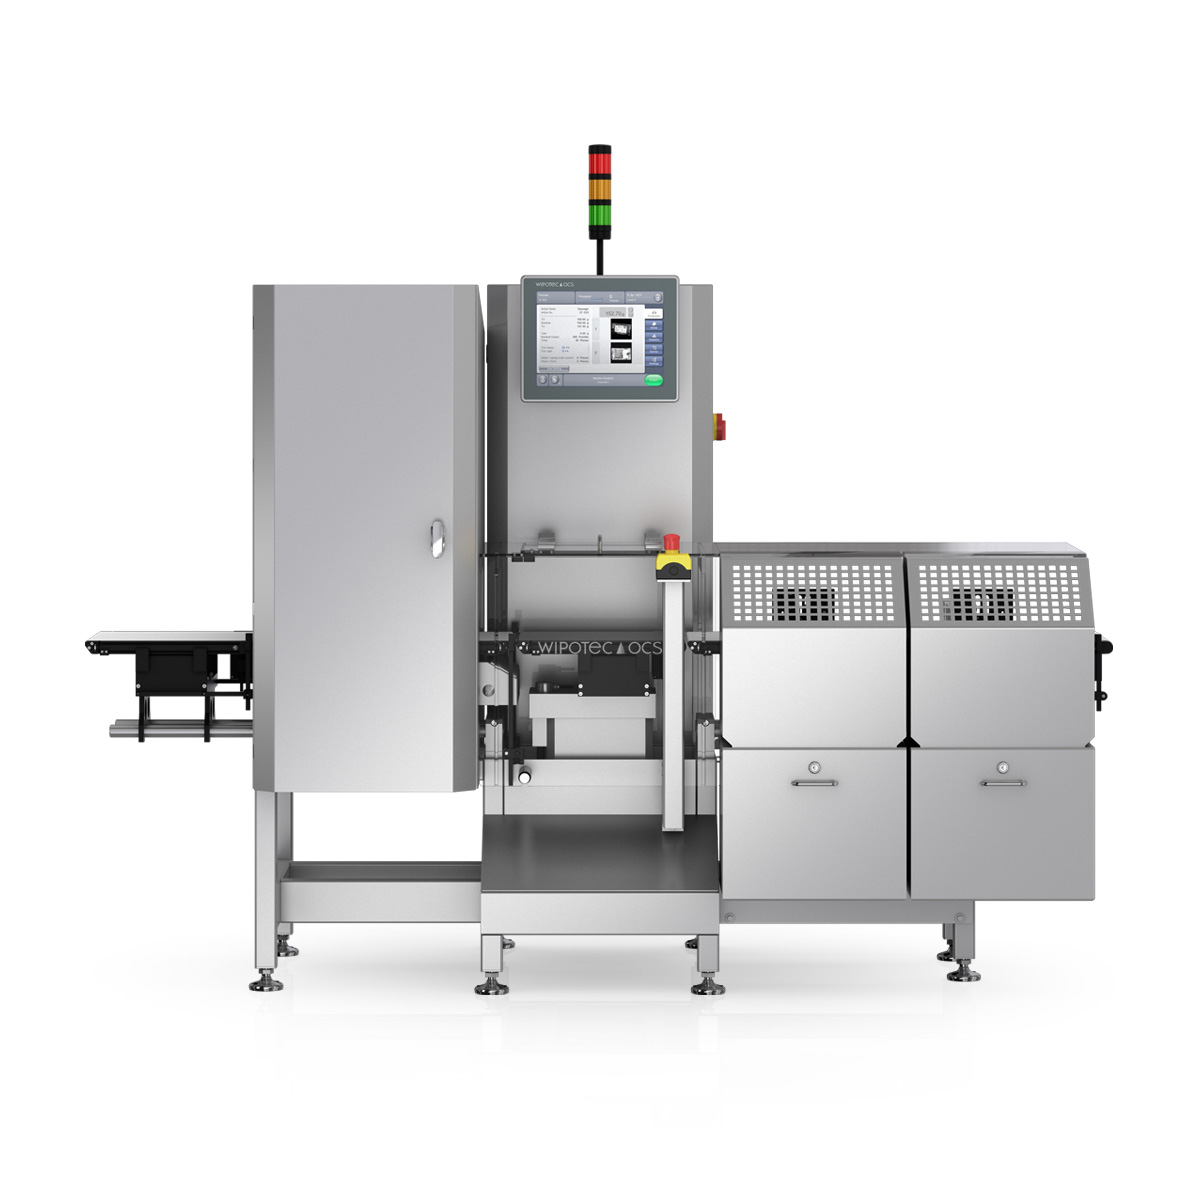 Checkweigher HC-A-V front view